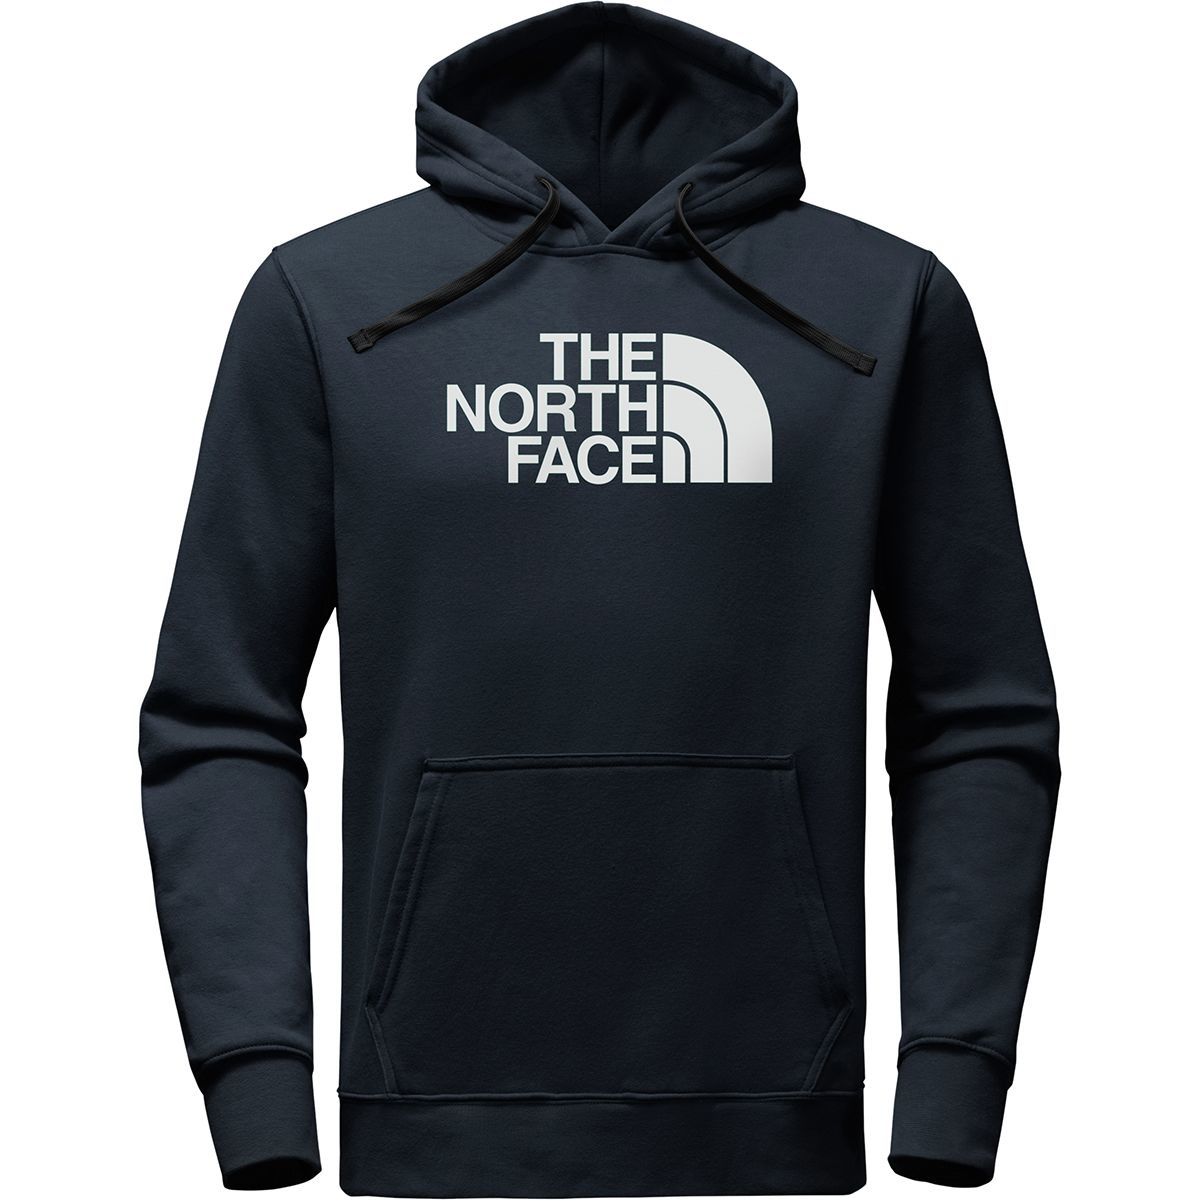 f049ecc39 The North Face Men's Half Dome Pullover Hoodie NF0A3FR1 M6S-Urban Navy/TNF  White